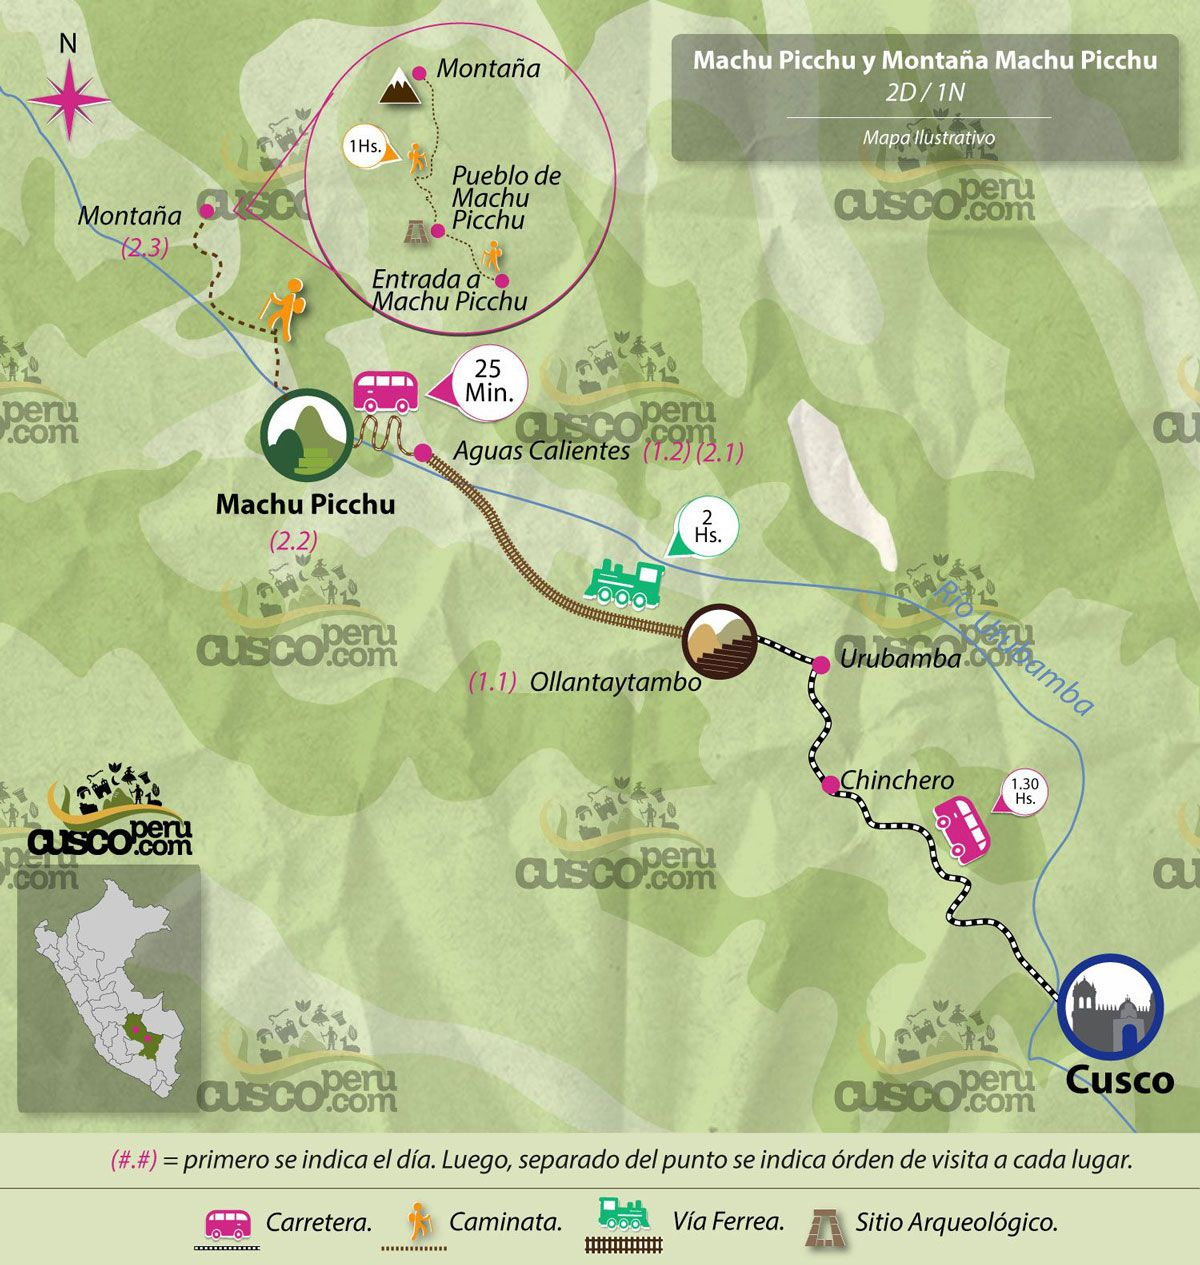 map tour machu picchu montana 2 days